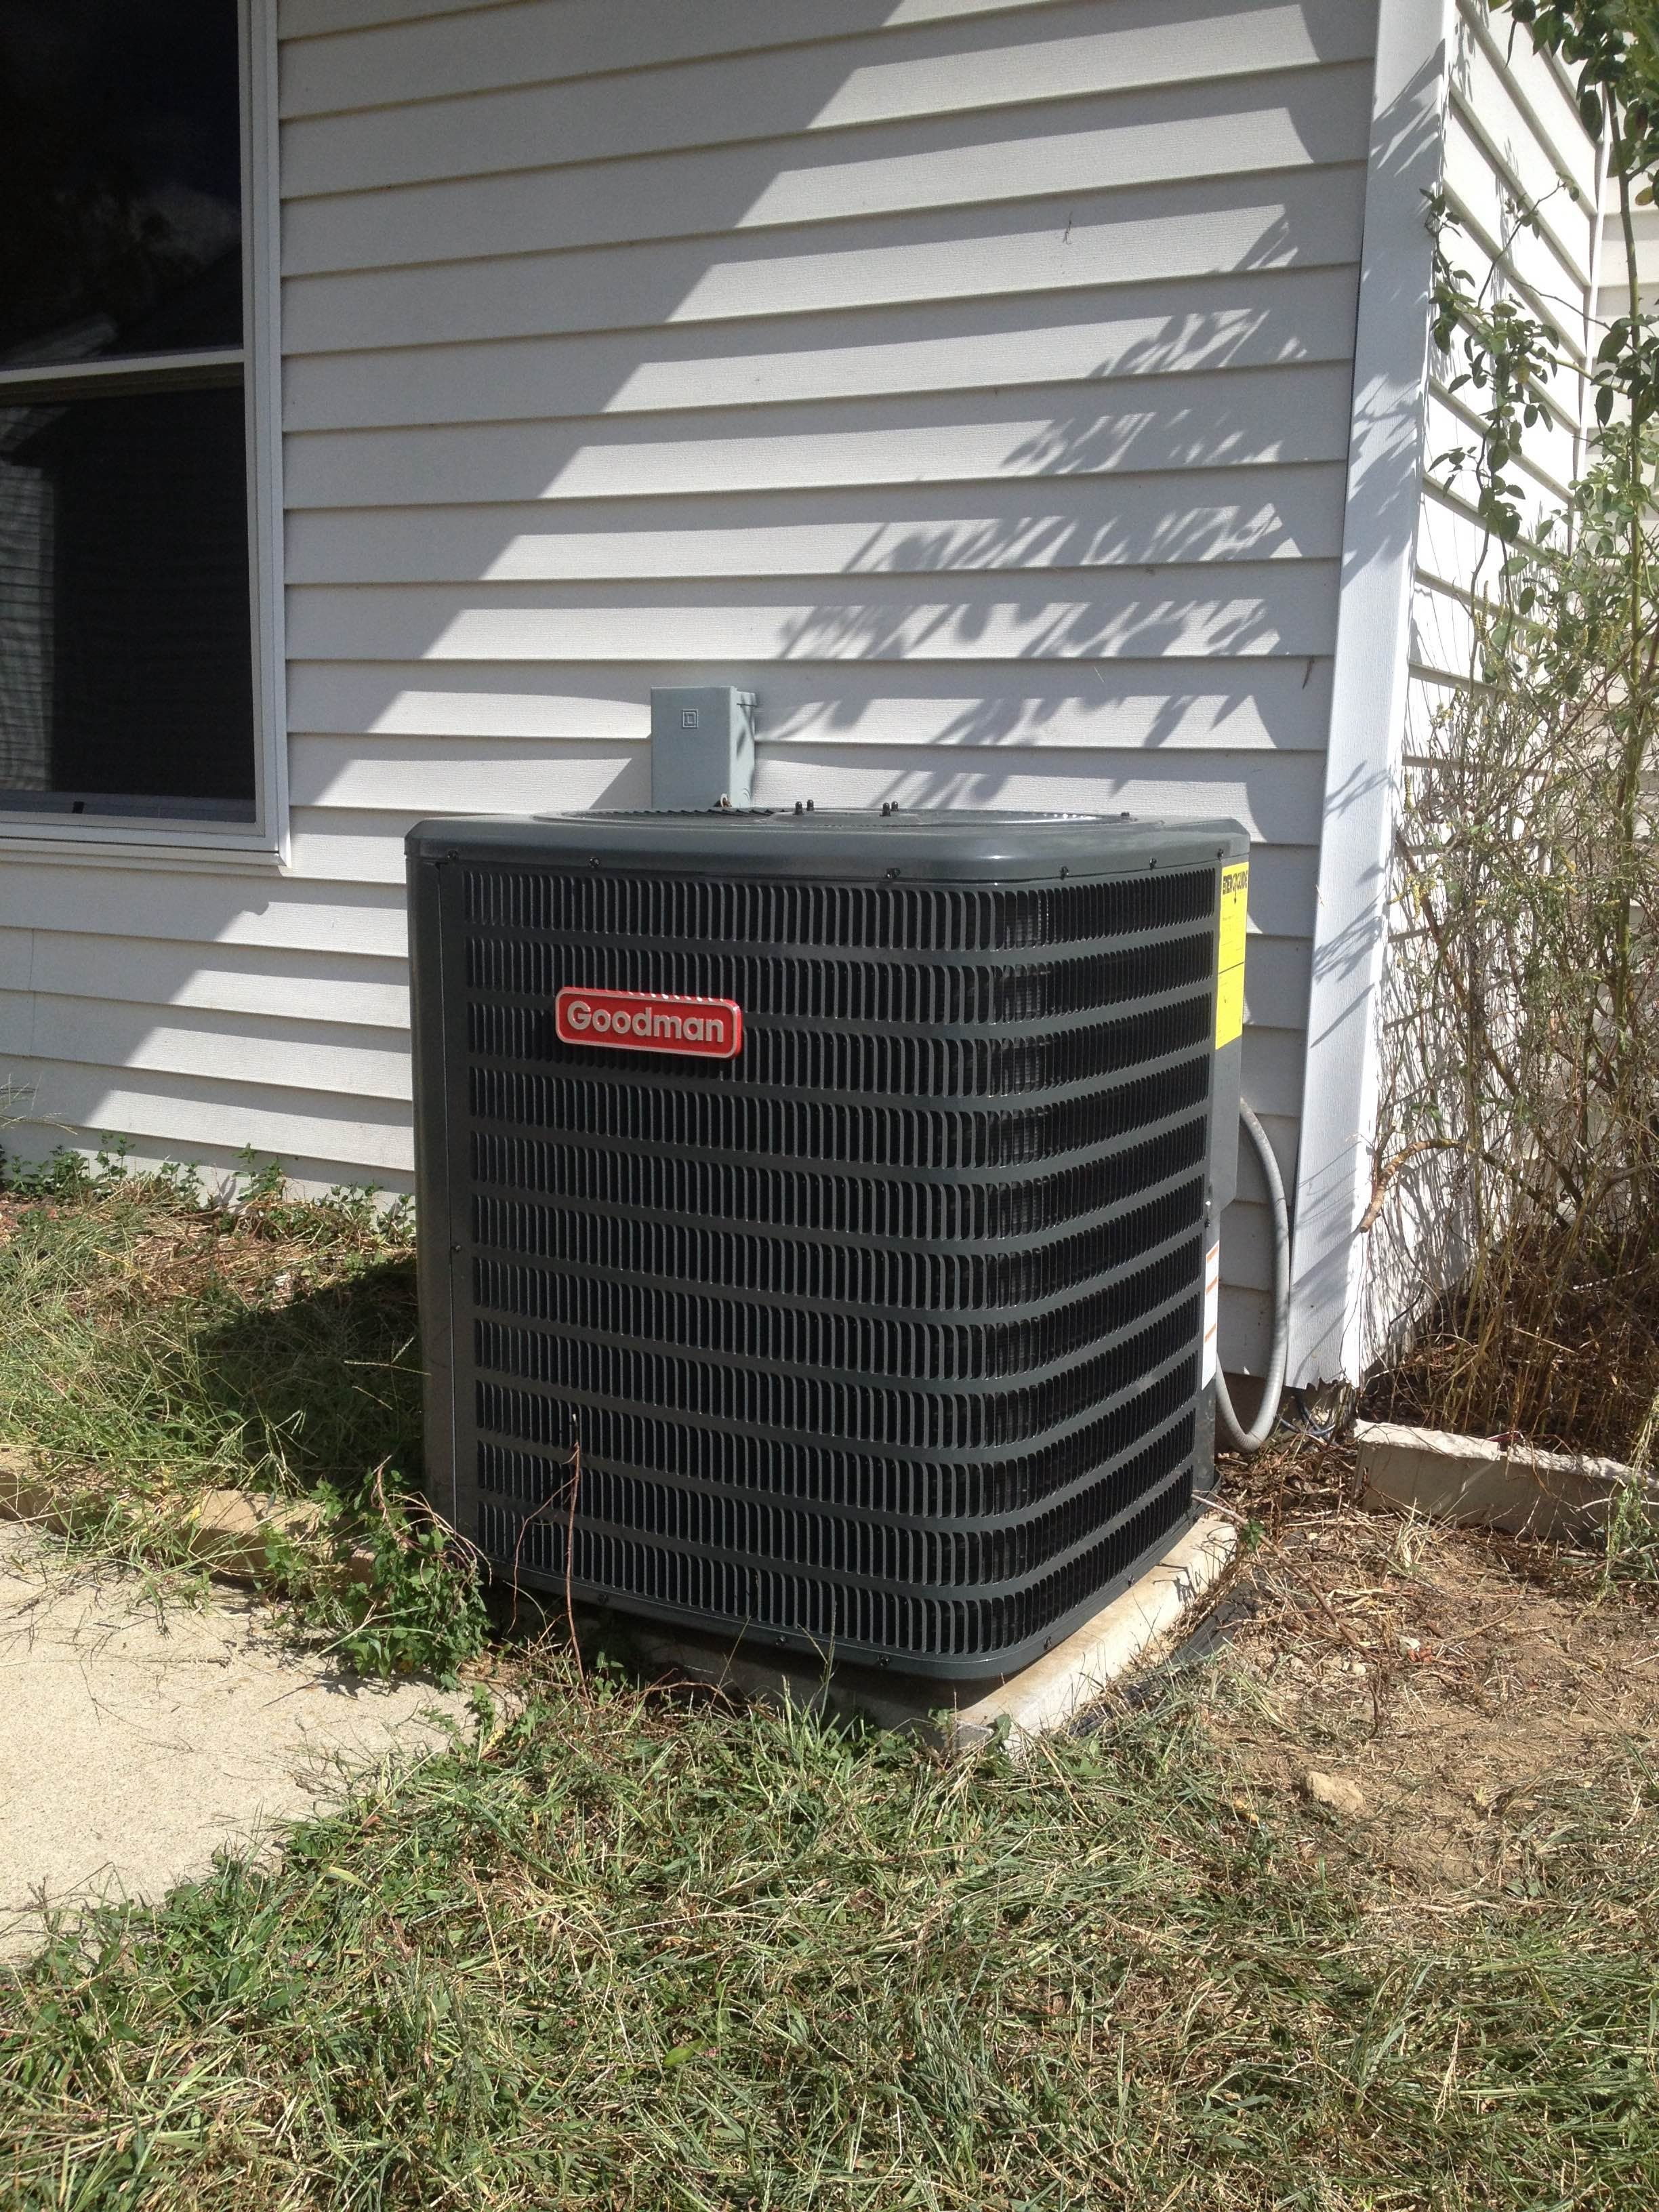 Idea by KY Energy Pro on Heating and AIr Conditioning